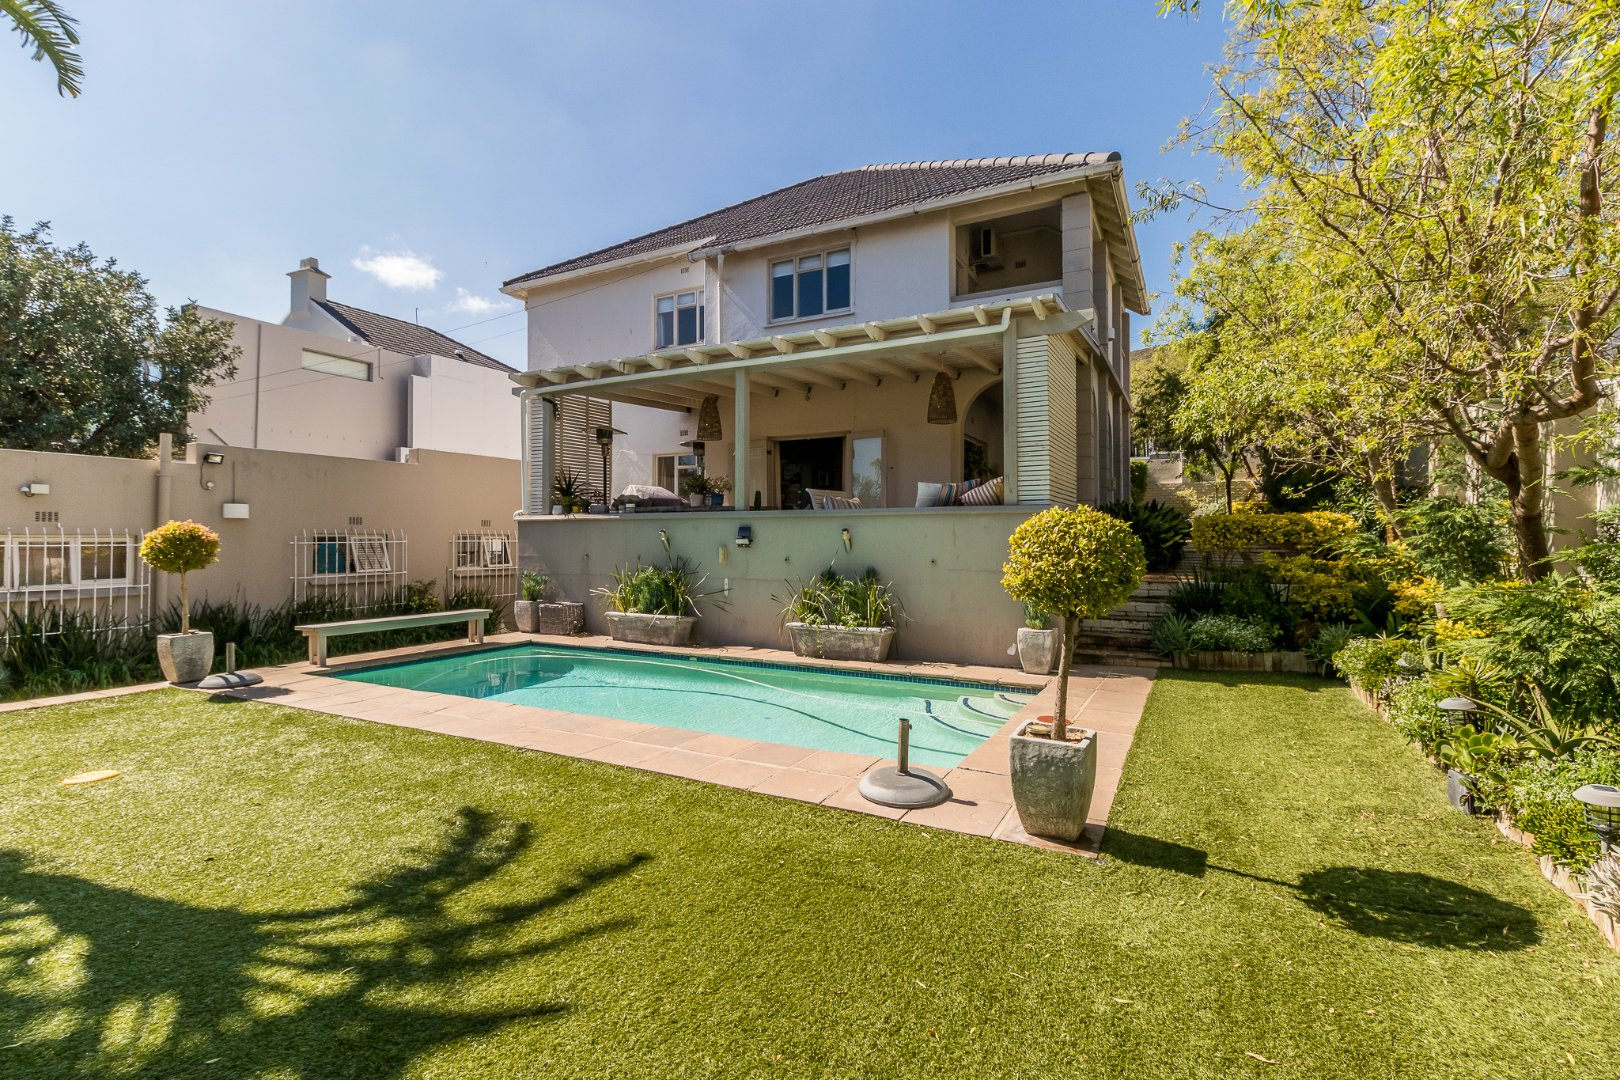 Large Family Home in Fresnaye with GR2 Zoning